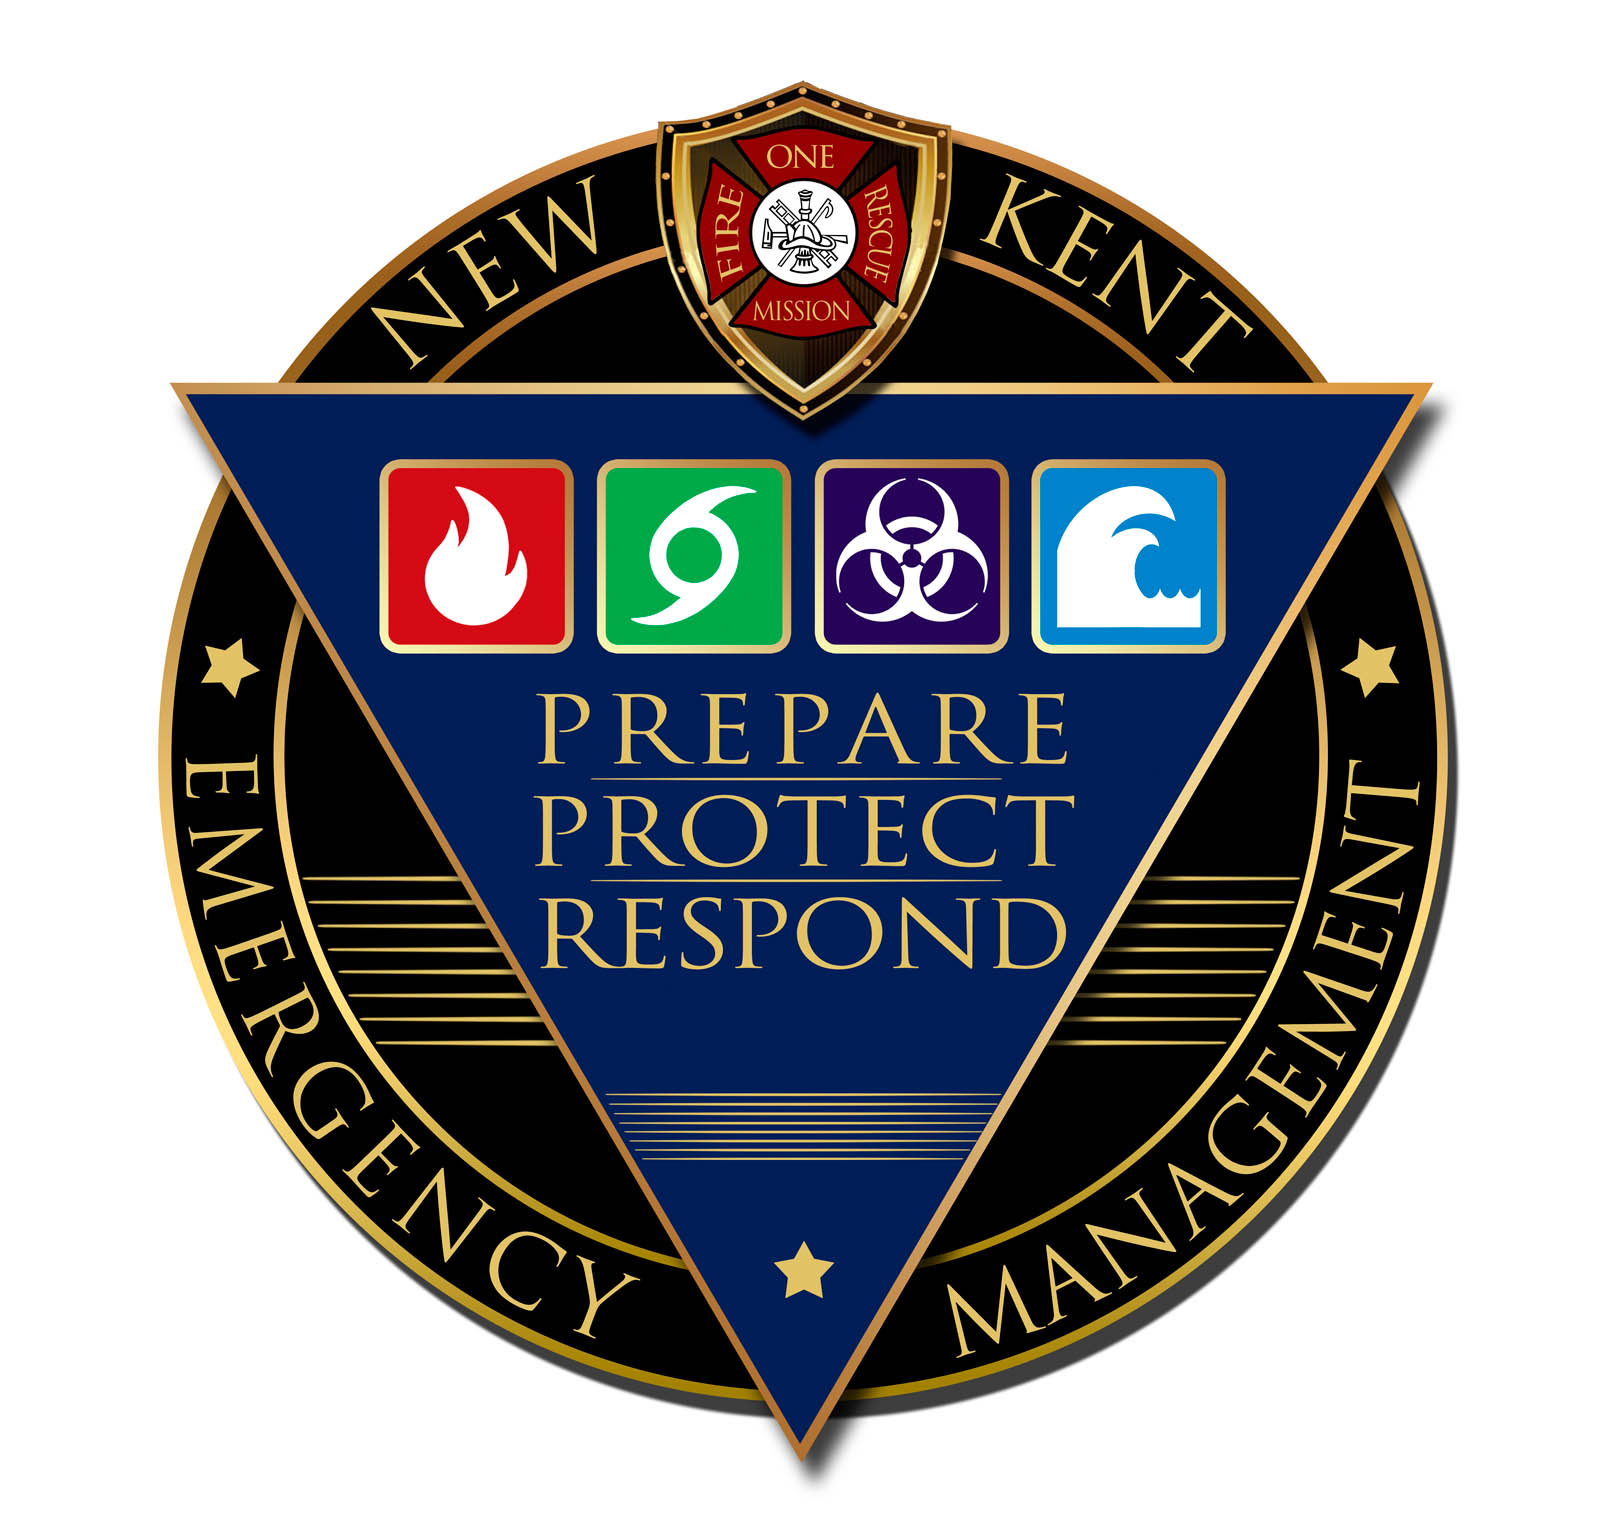 New-Kent-Emergency-Management-Logo-by-Terri-AIgner